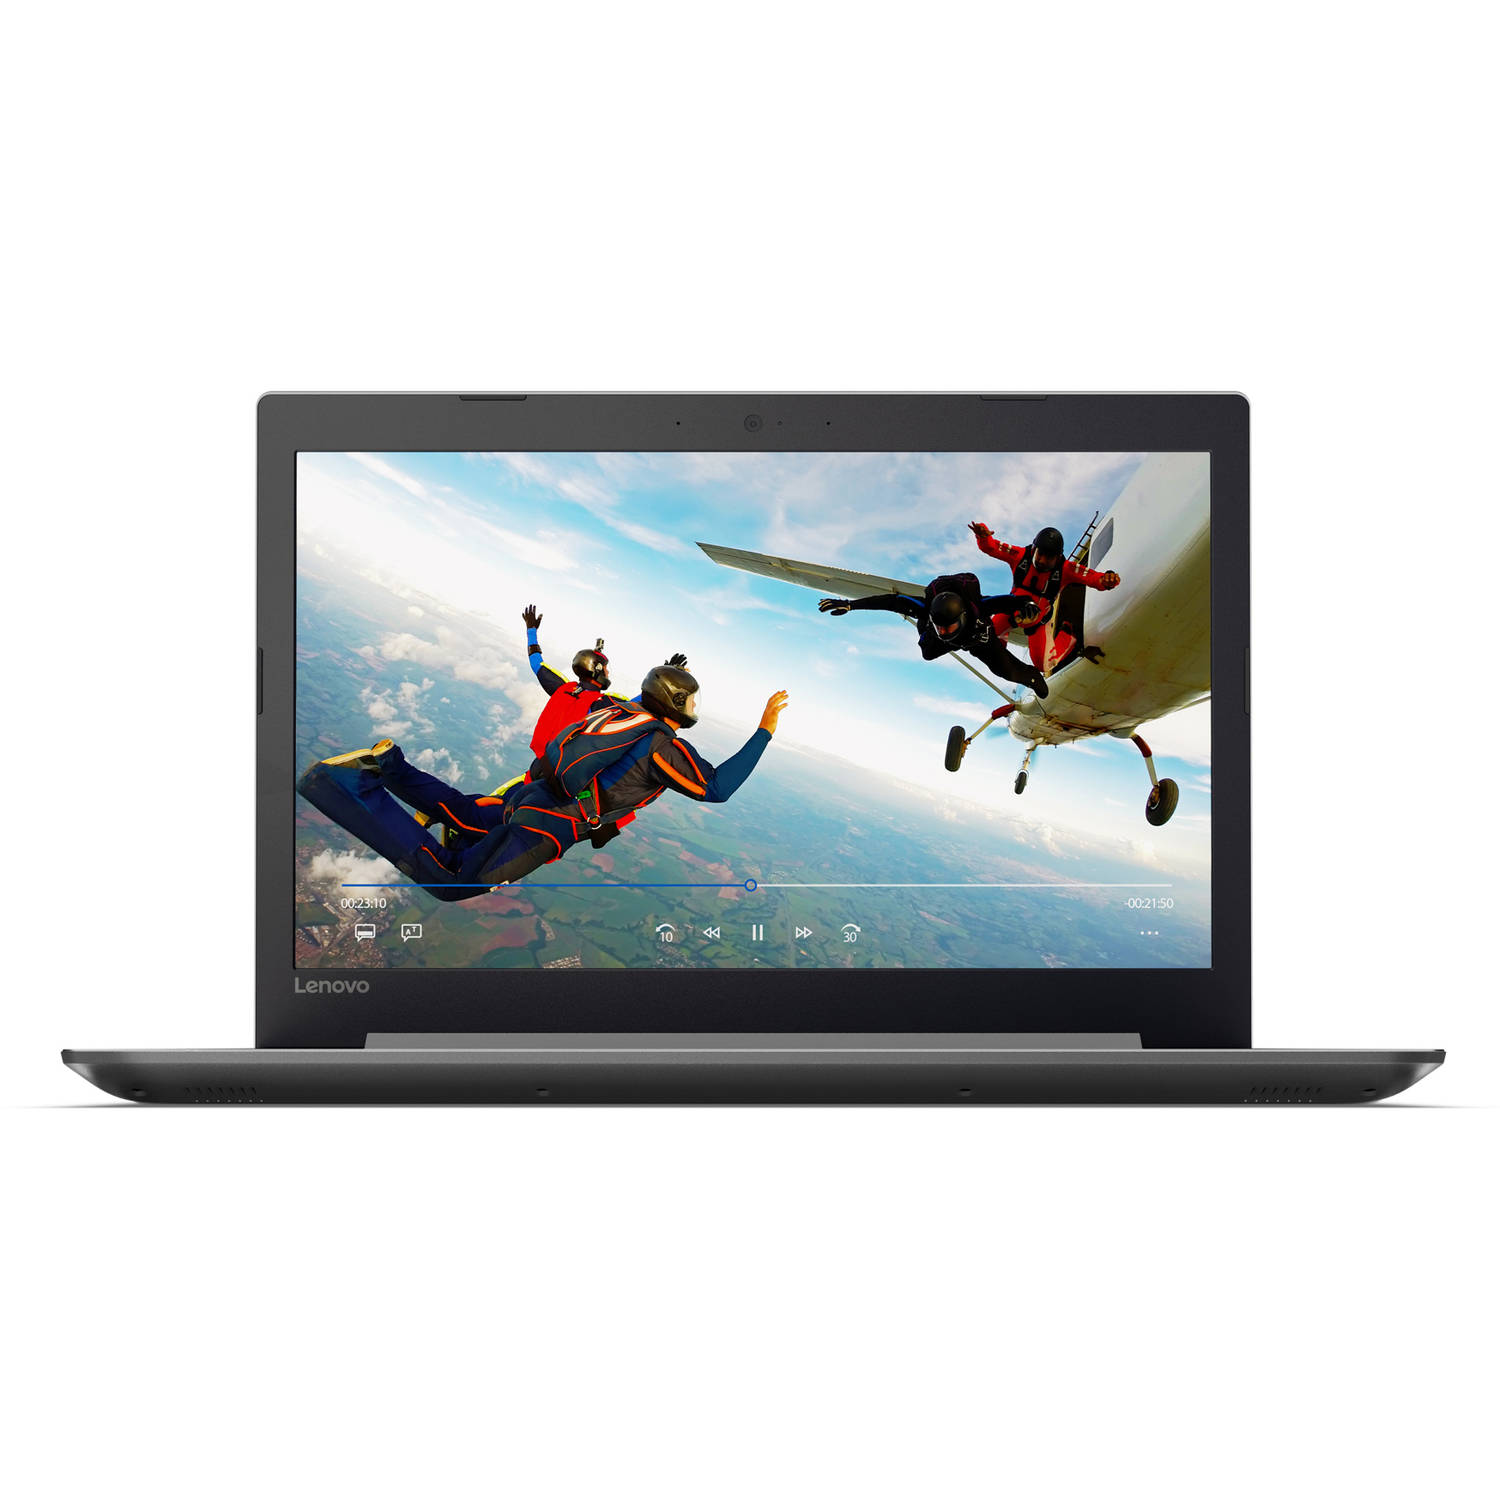 "Refurbished Lenovo 320-15IAP GREY 15.6"" Laptop Dual-Core 1.10GHz 4GB RAM 1TB HDD Windows 10"